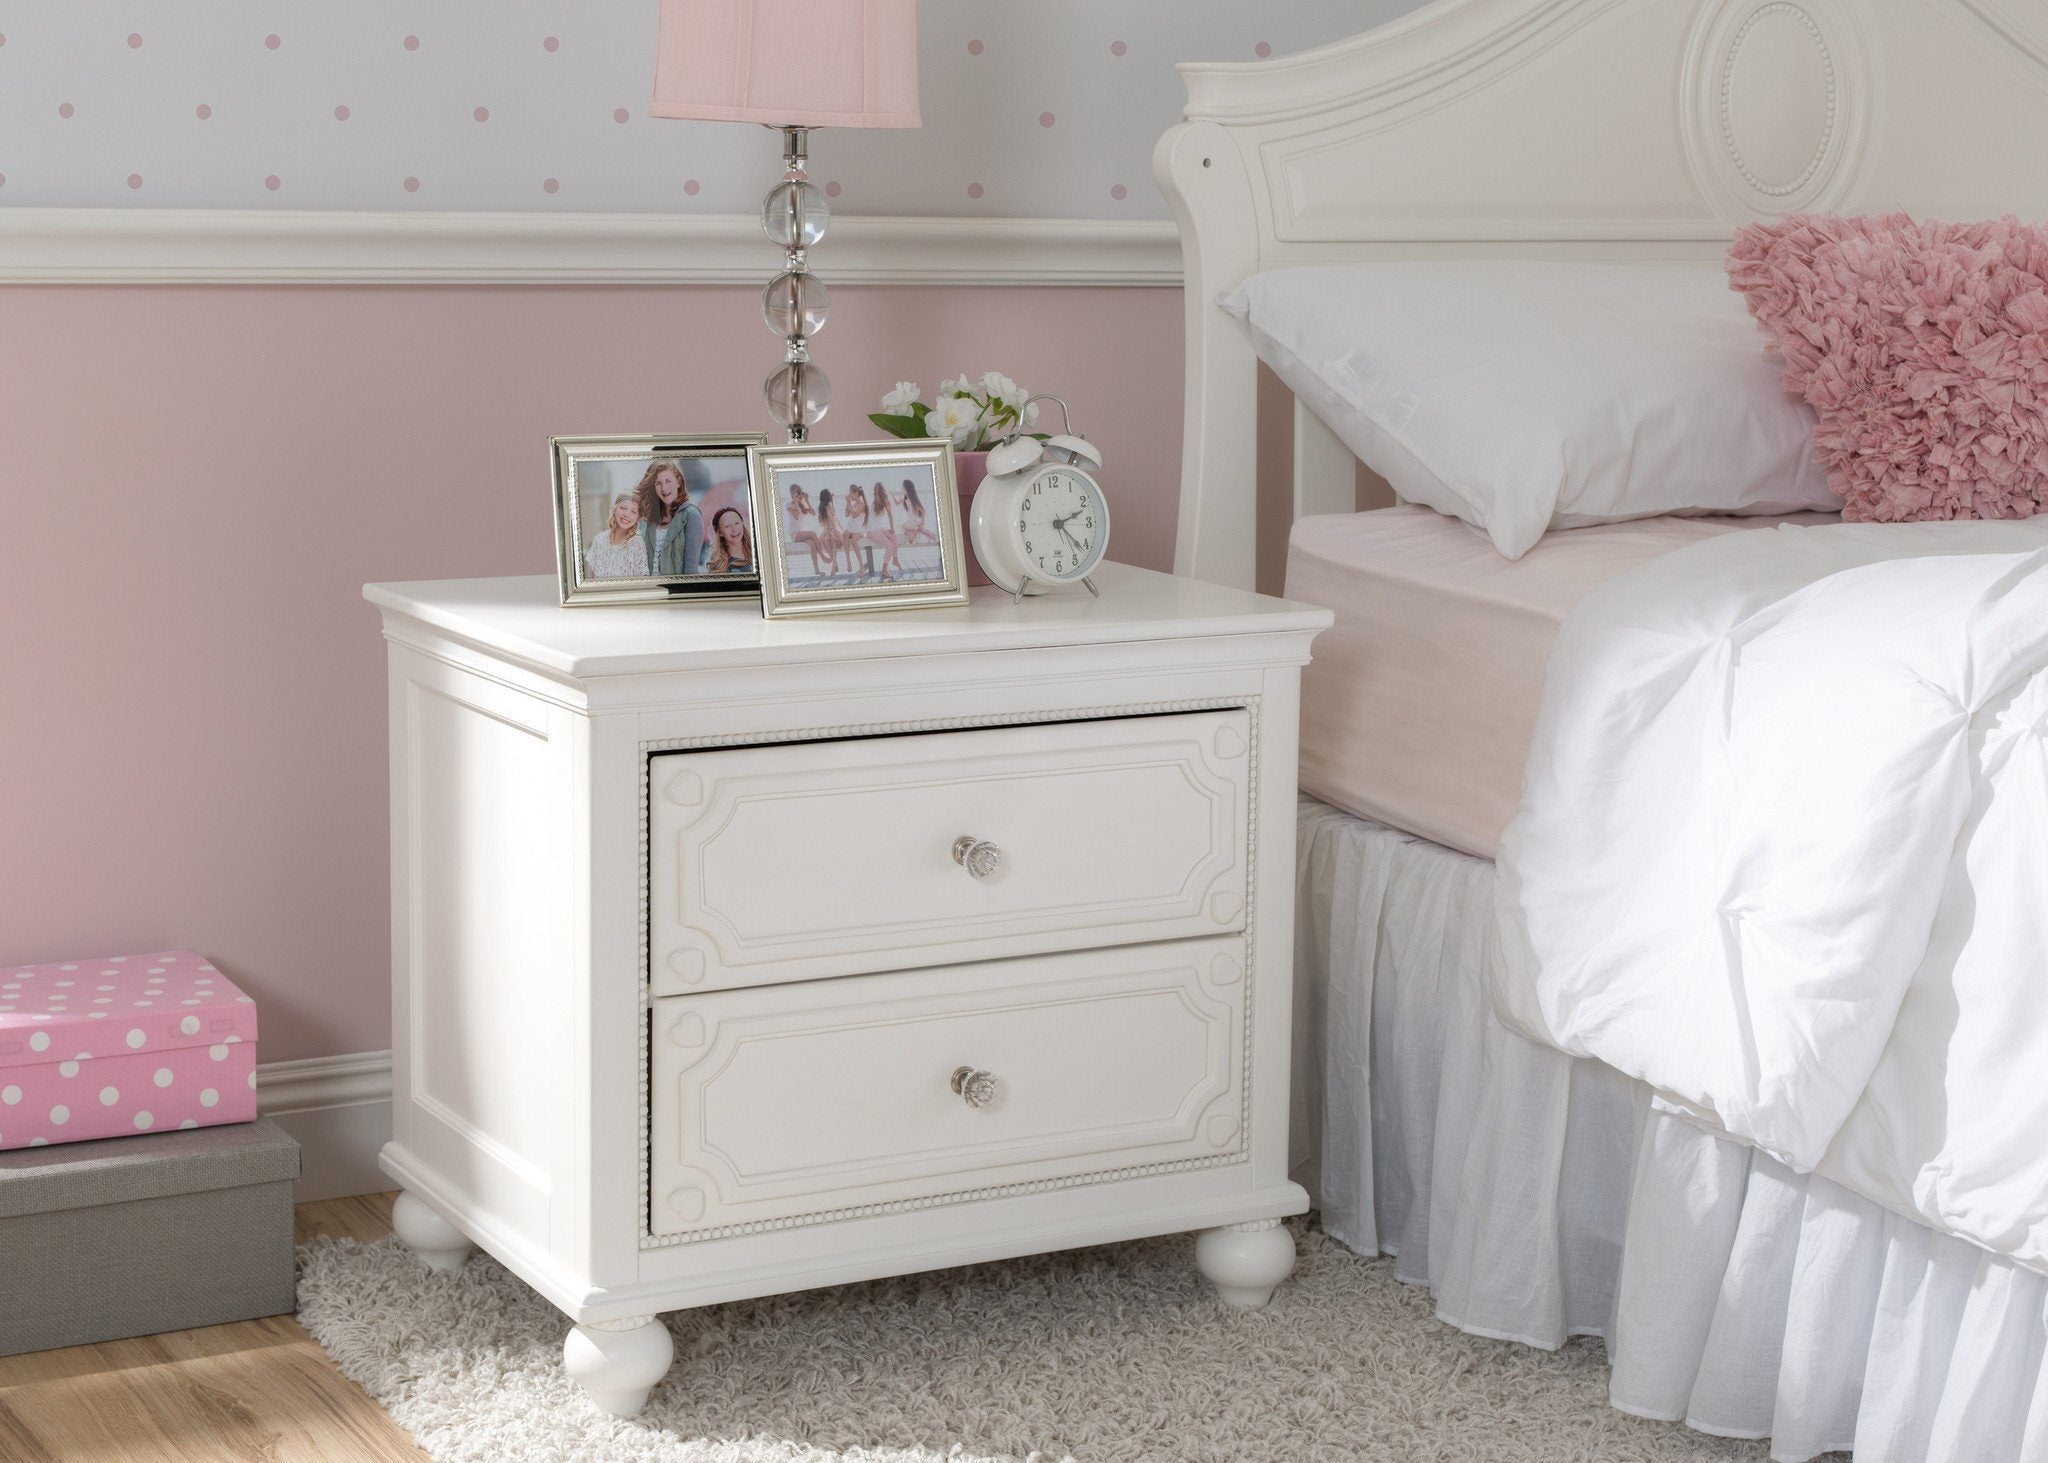 Delta Children White Ambiance (108) Disney Princess Magical Dreams Nightstand Side View a0a